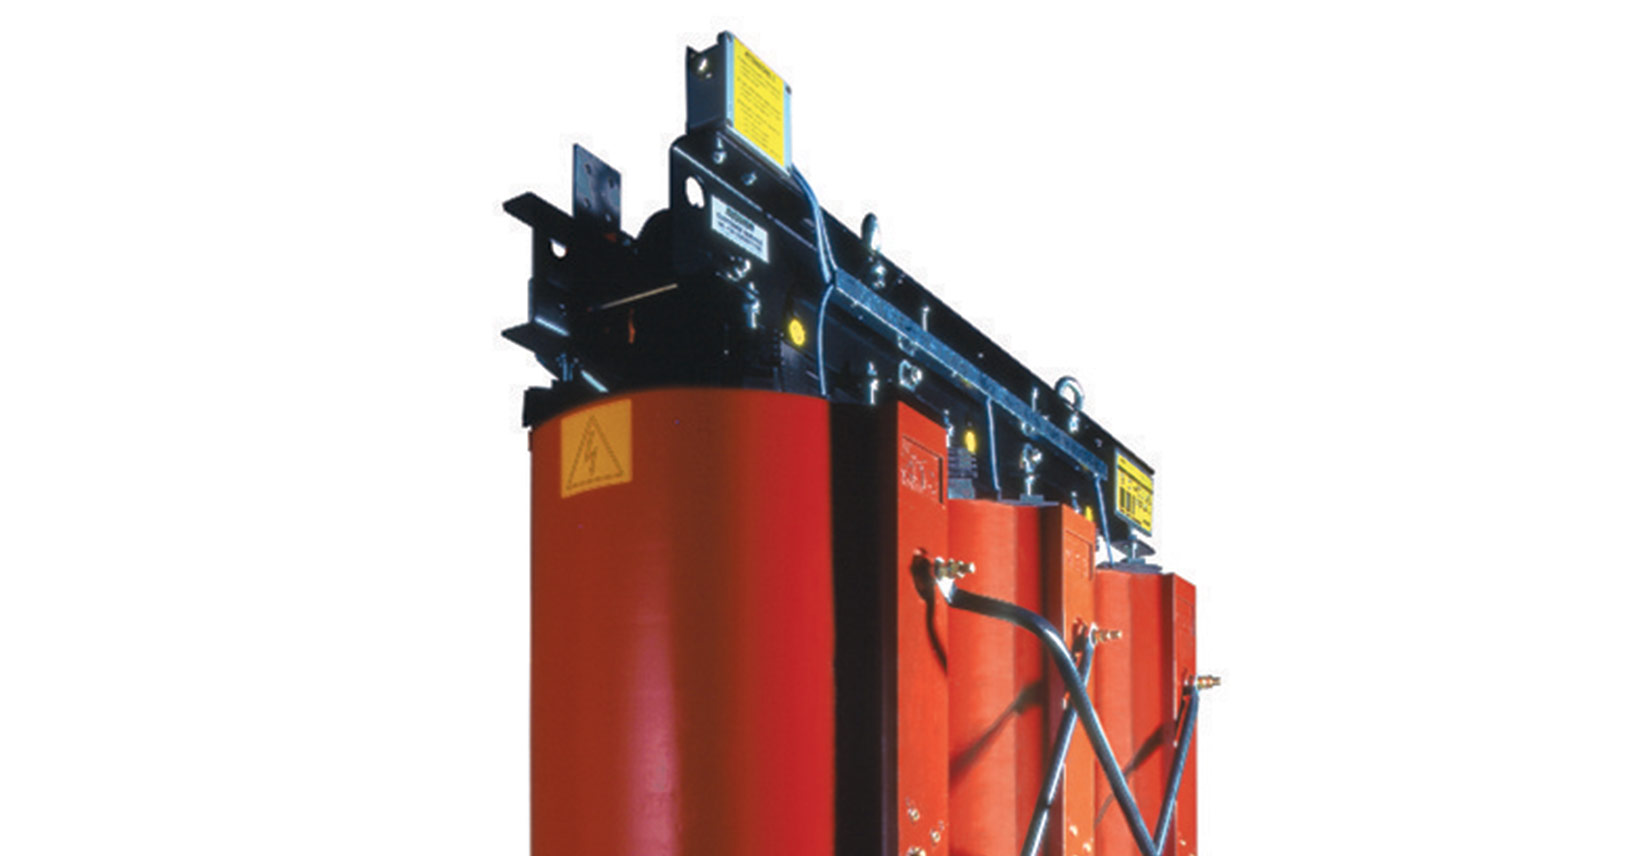 Dry-type transformers up to 20 MVA